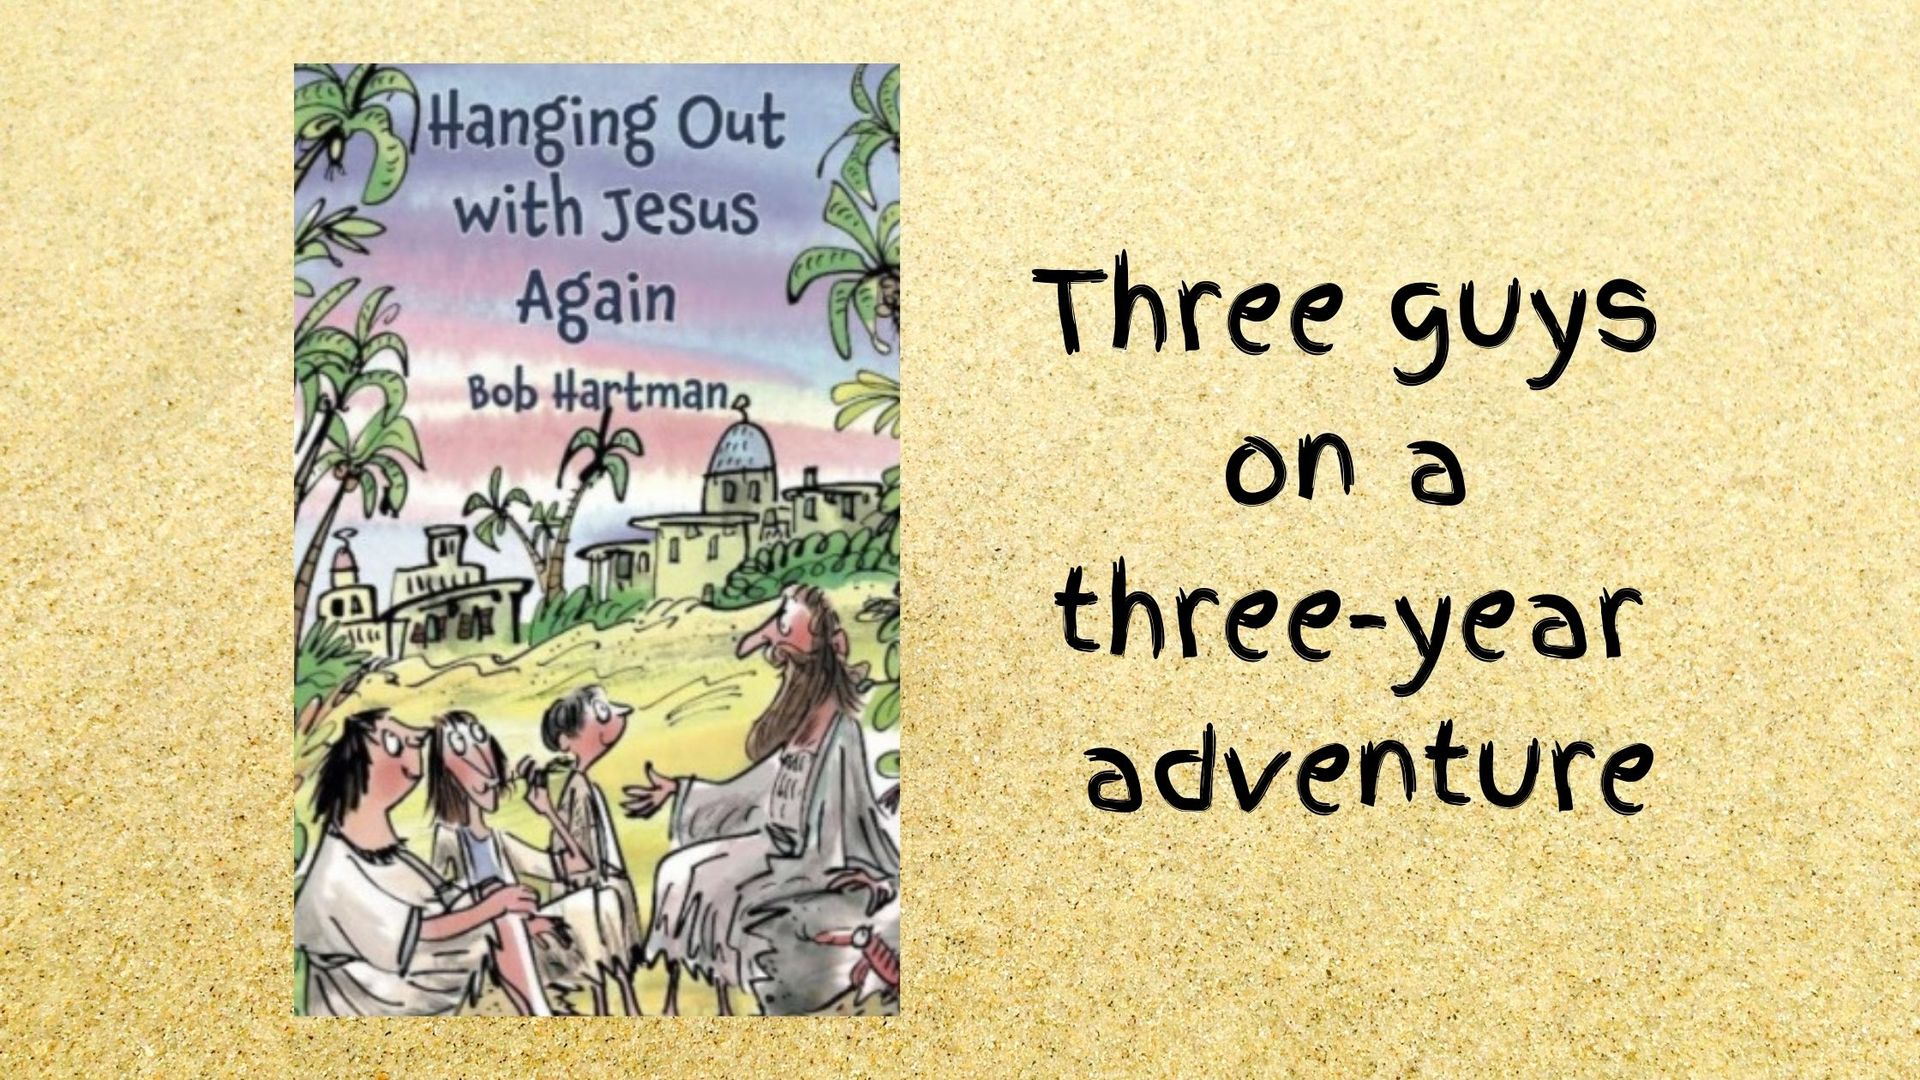 Bob Hartman answers questions regarding his latest book Hanging Out With Jesus Again